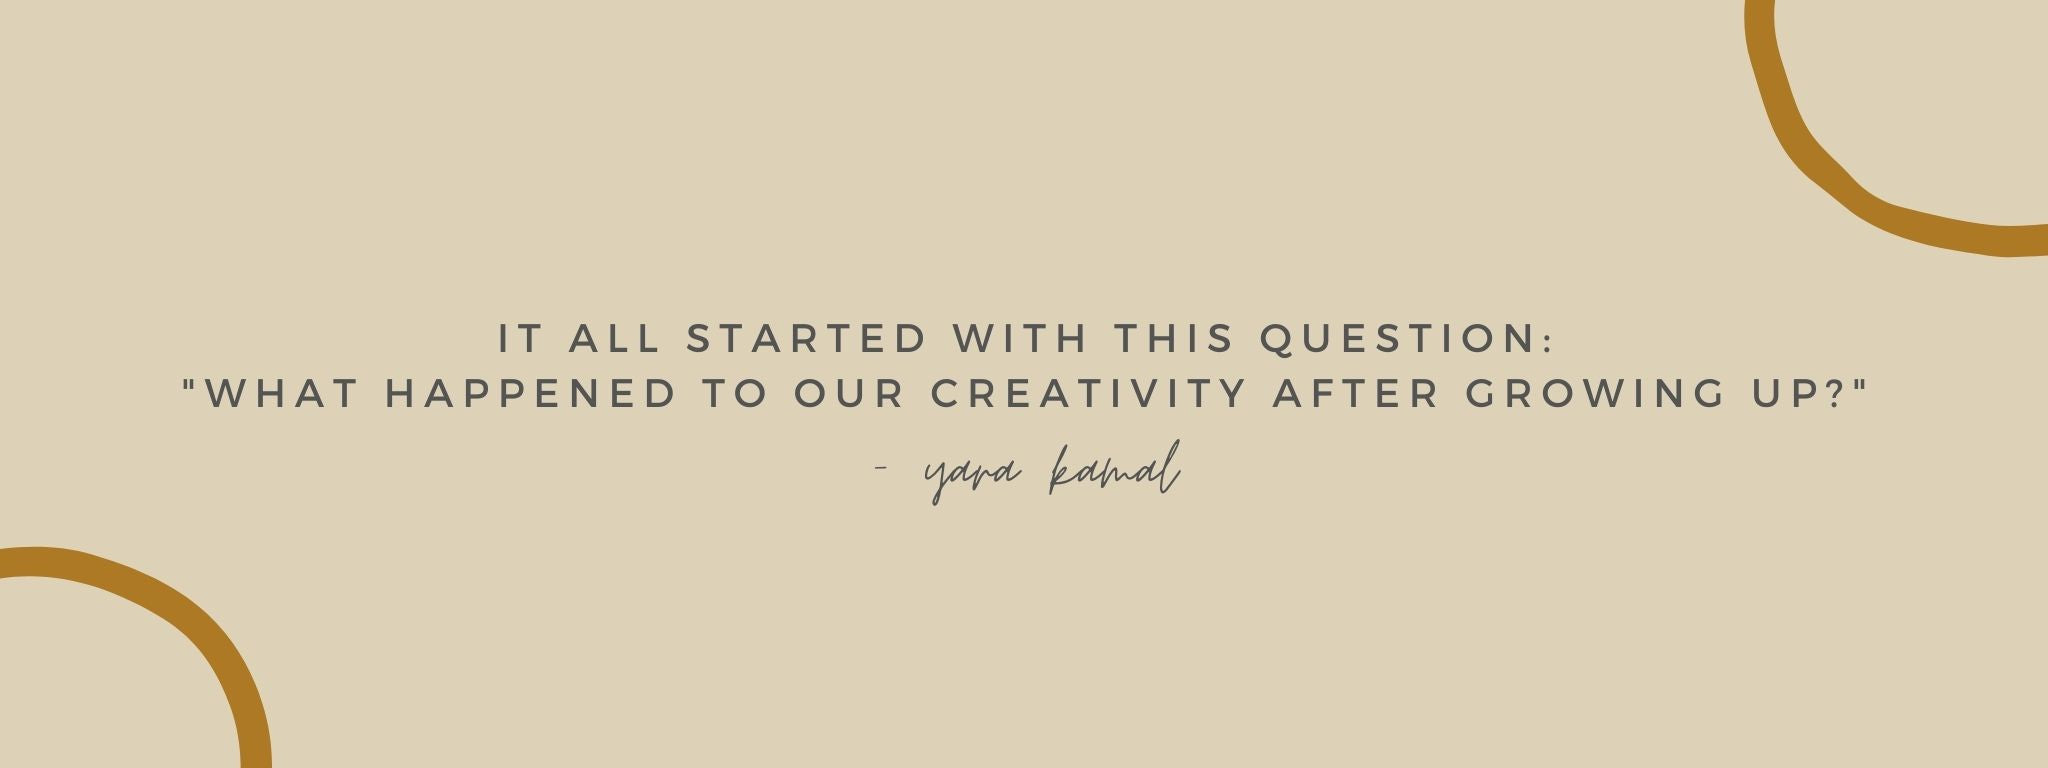 """IT ALL STARTED WITH THIS QUESTION: """"WHAT HAPPENED TO OUR CREATIVITY AFTER GROWIN UP?"""" - Yara Kamal"""